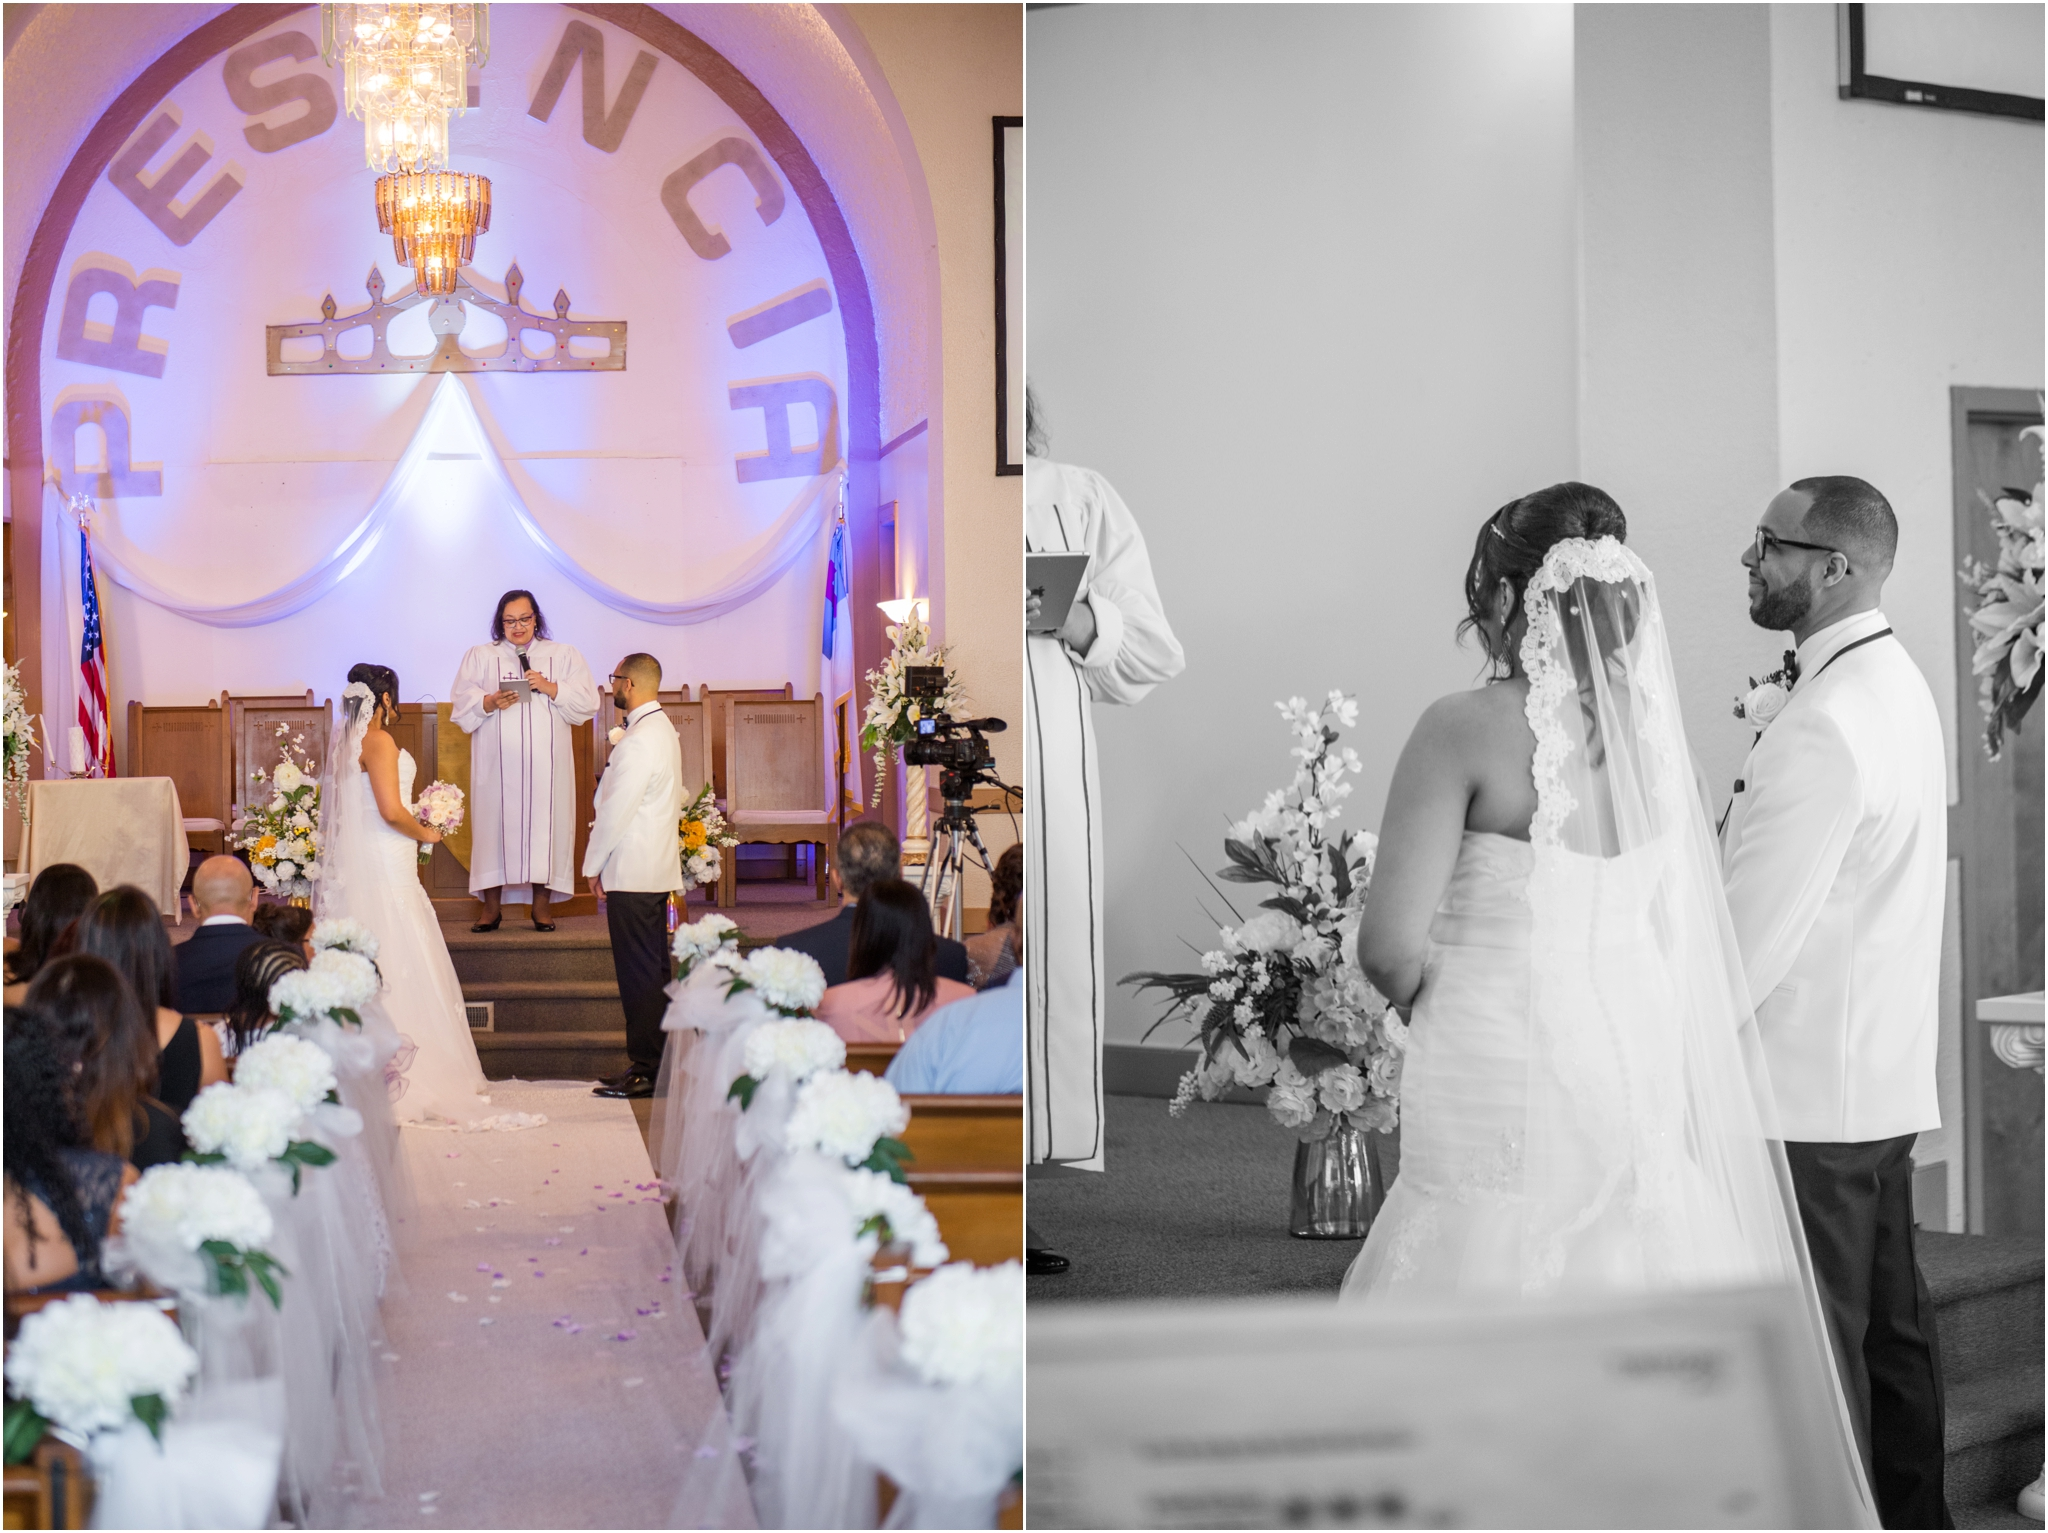 jaclyn-auletta-photography-blog-north-carolina-wedding-photographer-blogger_0021.jpg